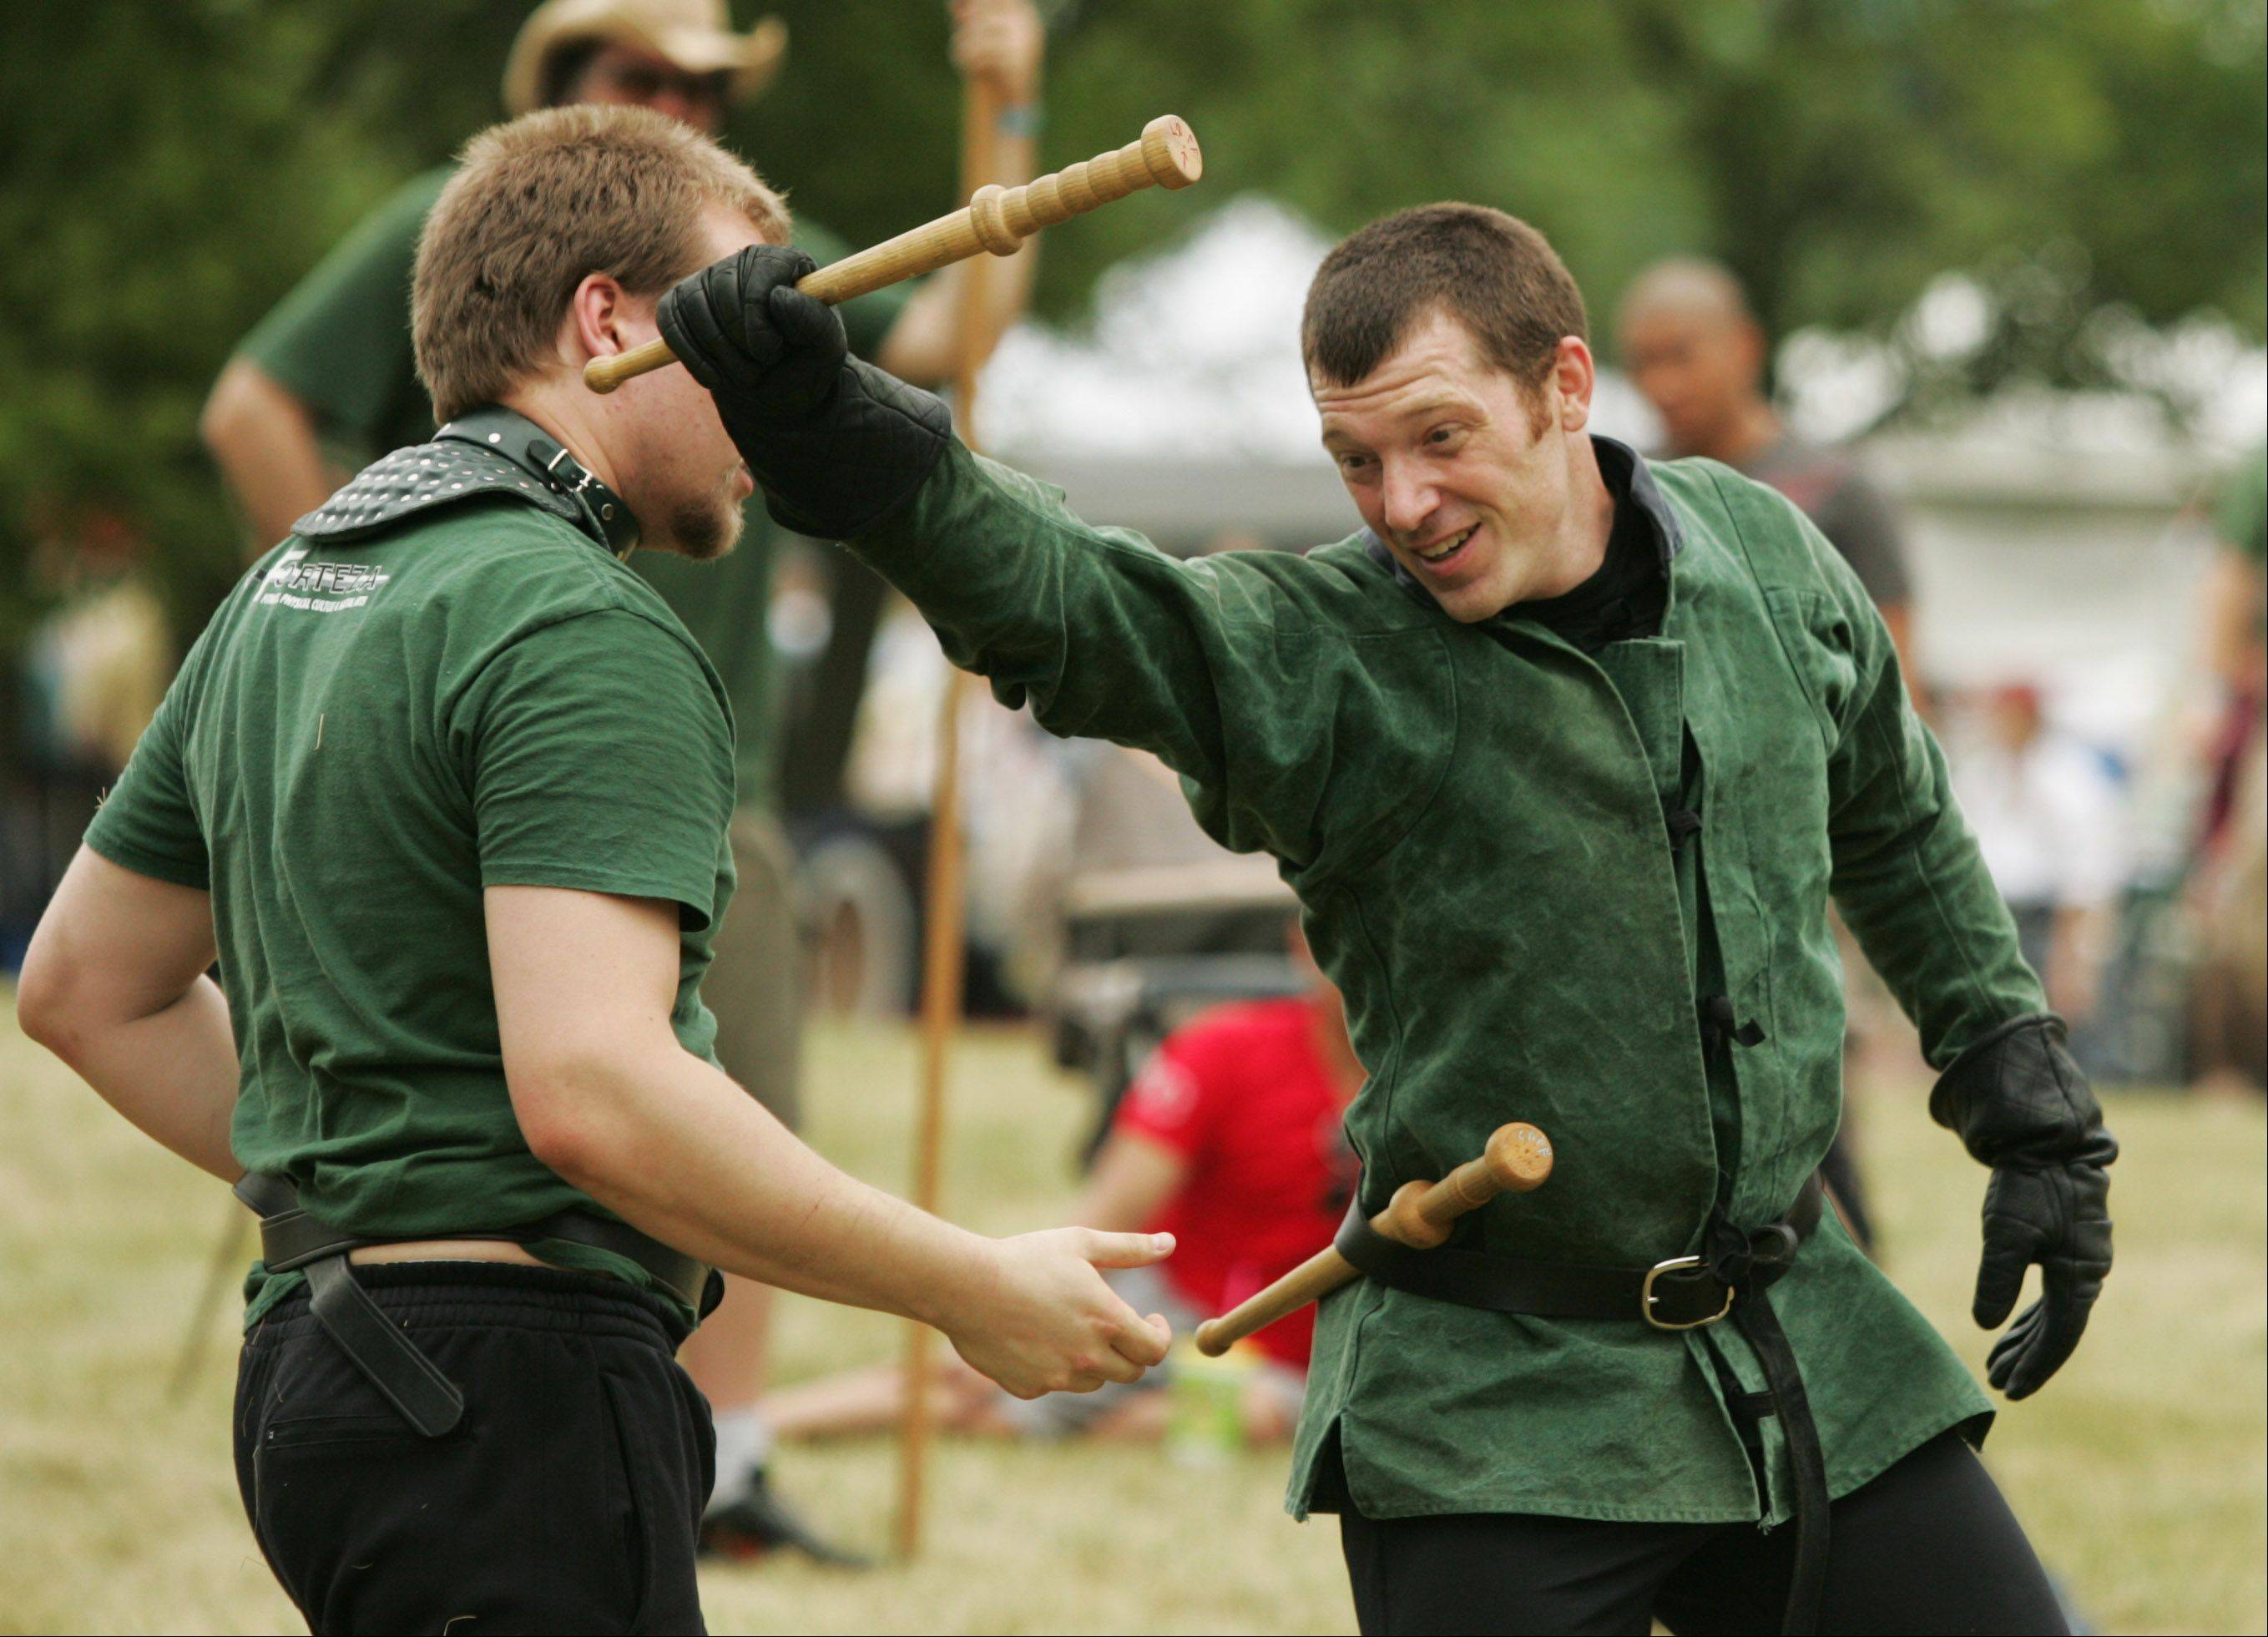 Nathan Wisniewski of Arlington Heights and Jesse Kulla of Chicago, members of the Chicago Swordplay Guild, demonstrate techniques Saturday during the second day of the 26th annual Illinois St. Andrew Society Scottish Festival and Highland Games at Hamilton Lakes in Itasca. The event was expected to draw between 12,000 and 15,000 people.